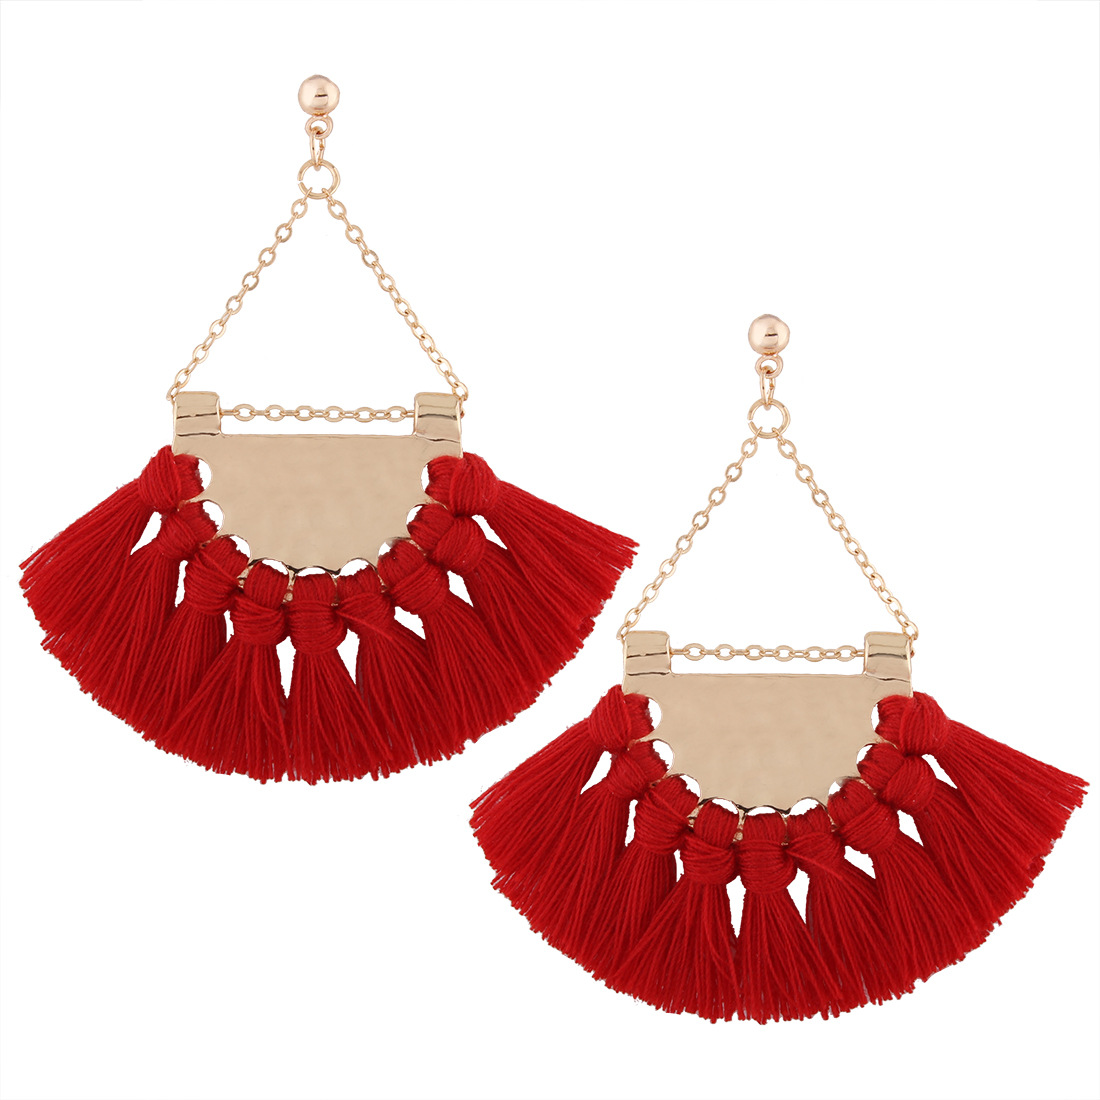 zheFanku Bohemia Tassel Earrings Women Ethnic Jewelry